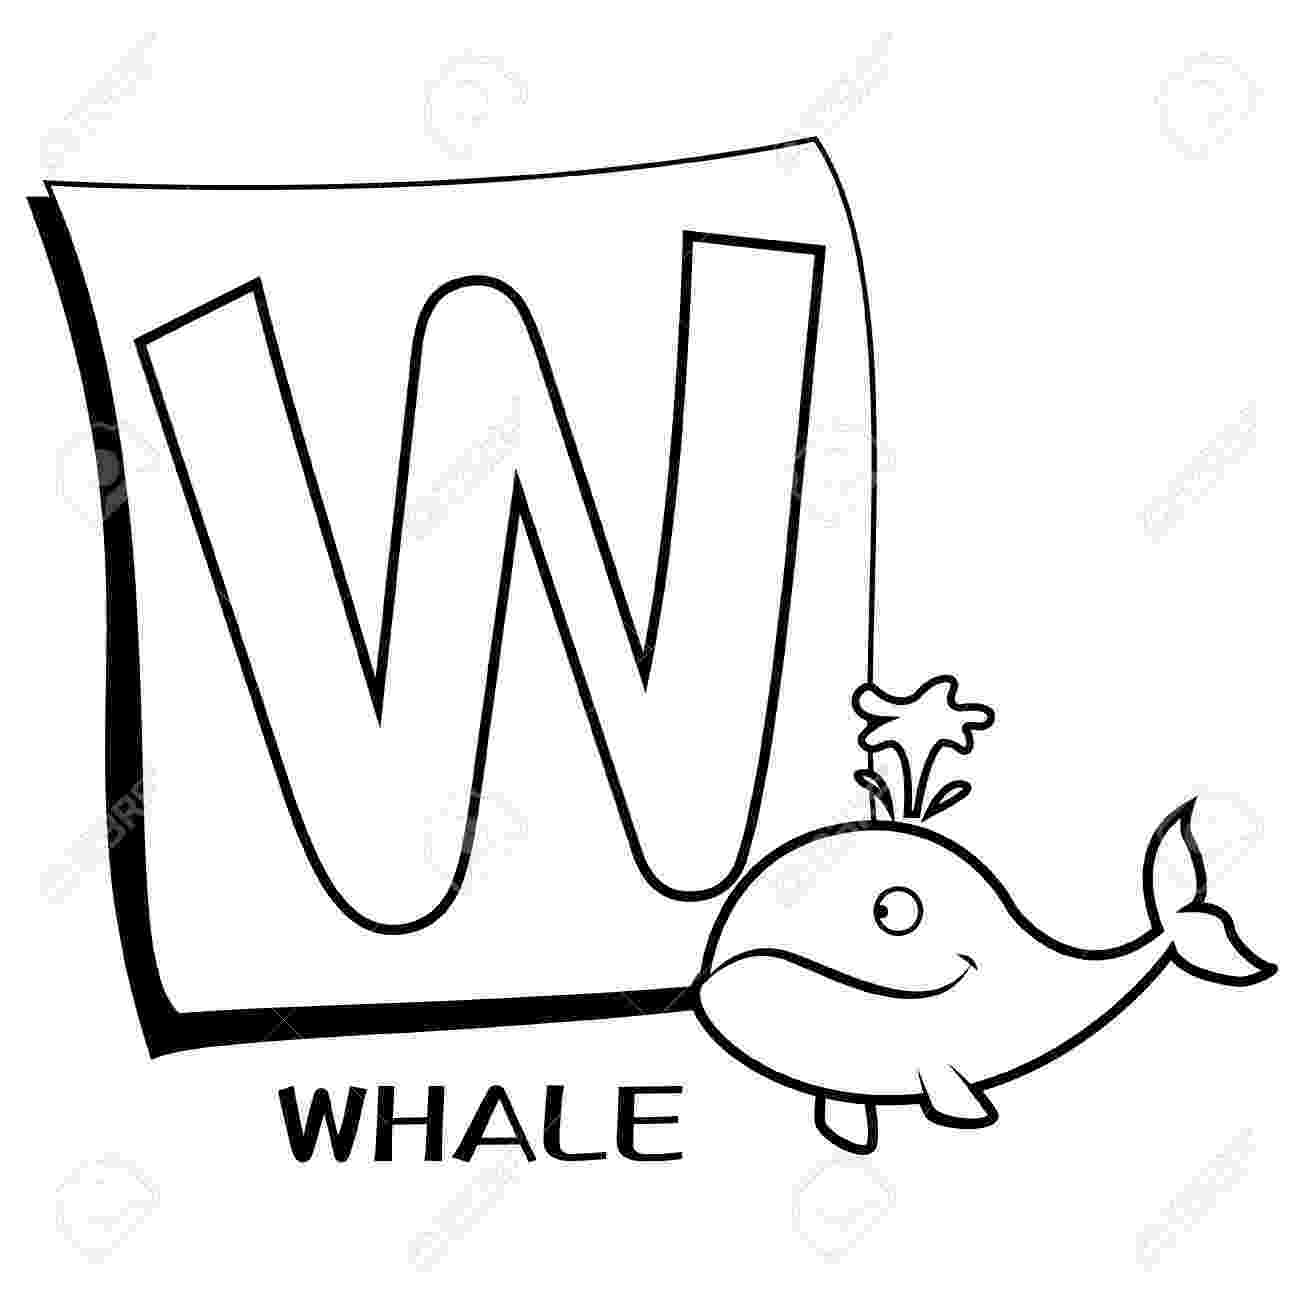 animal kingdom coloring book whale whale drawing for kids at getdrawings free download book whale coloring kingdom animal